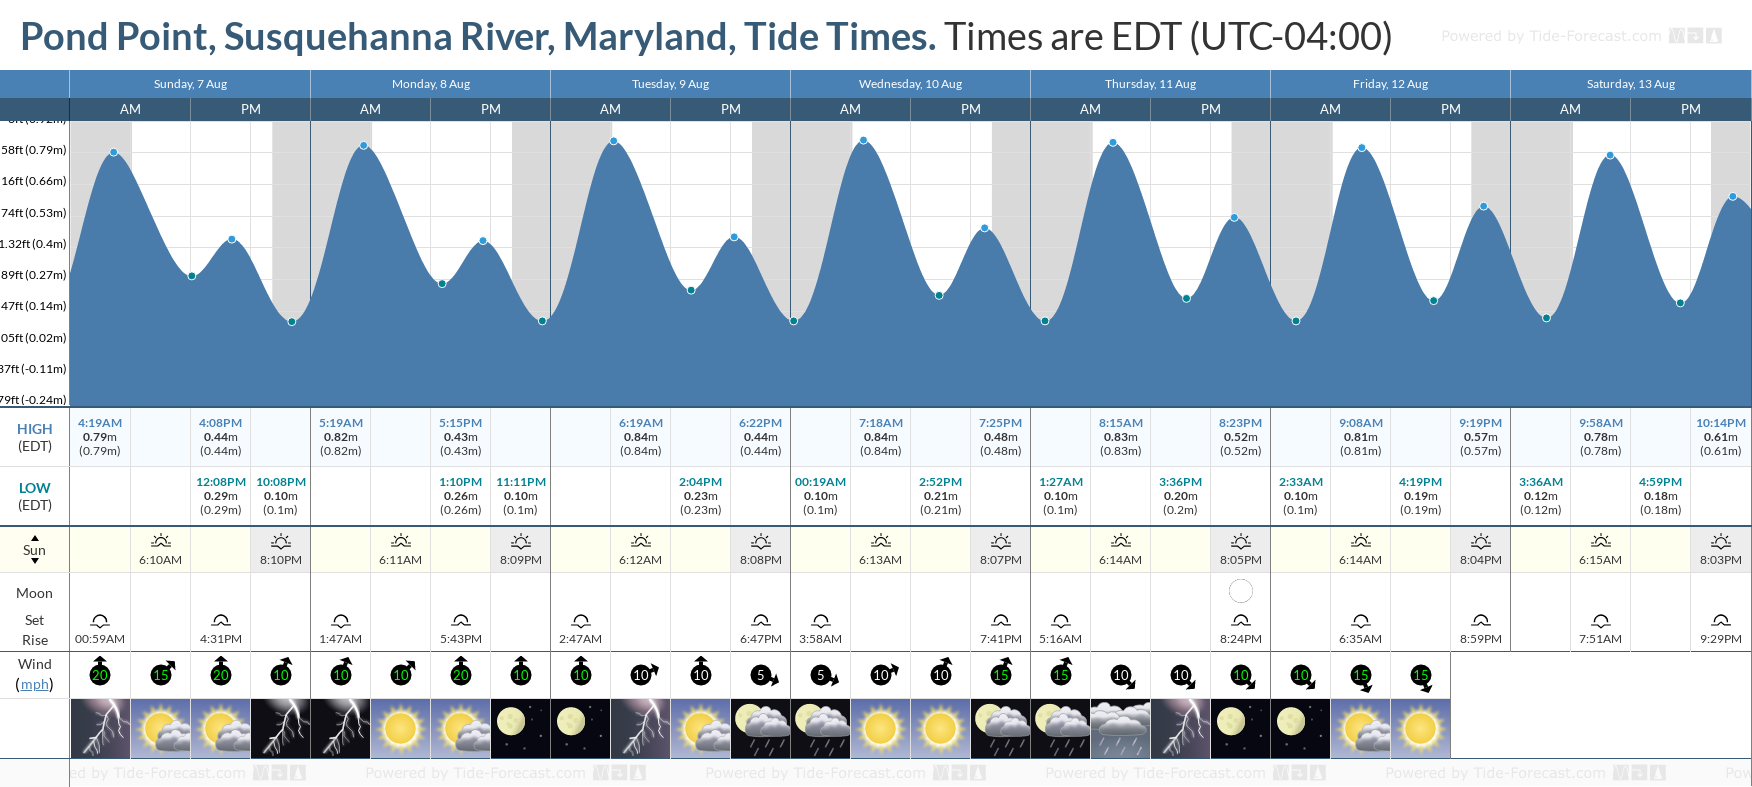 Pond Point, Susquehanna River, Maryland Tide Chart including high and low tide tide times for the next 7 days